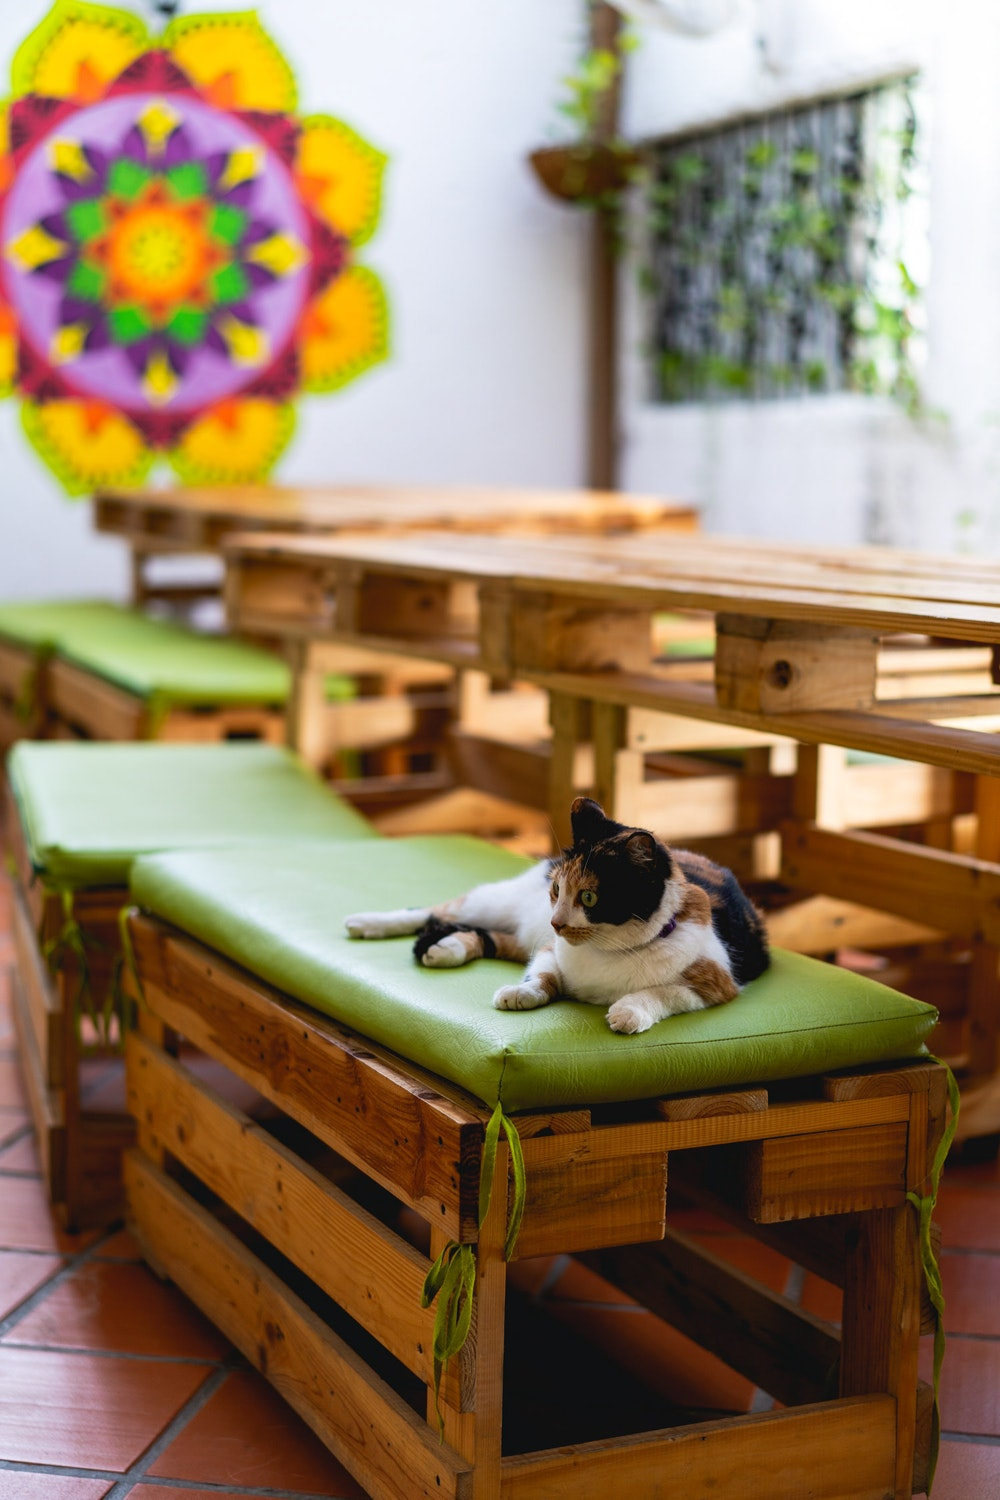 Cat laying on green bench pads on wooden benches